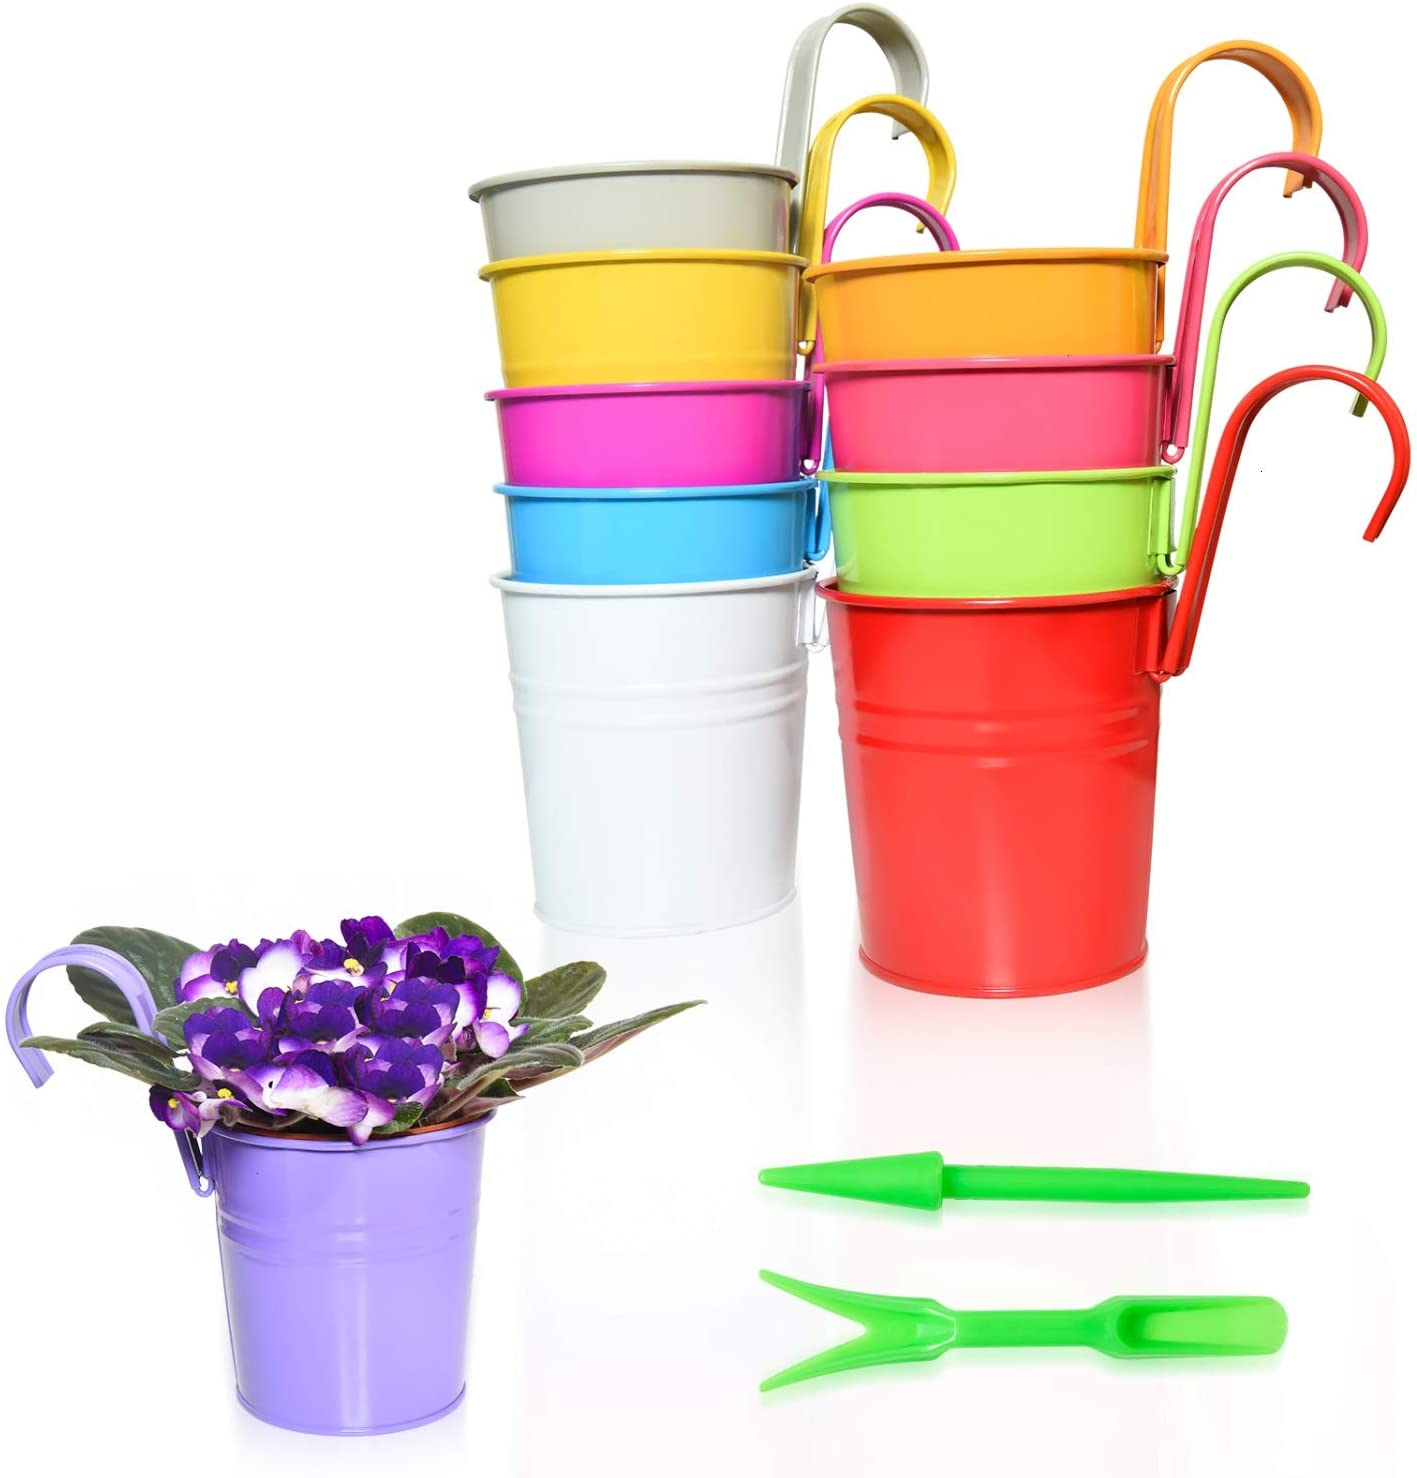 Vumdua Hanging Flower Pots, 10 PCS Metal Planters Bucket Cup for Deck Railing Fence Balcony Garden Patio Home - Plant Holder with Detachable Hook, Drainage Hole, Silicone Plug, Gardening Tools